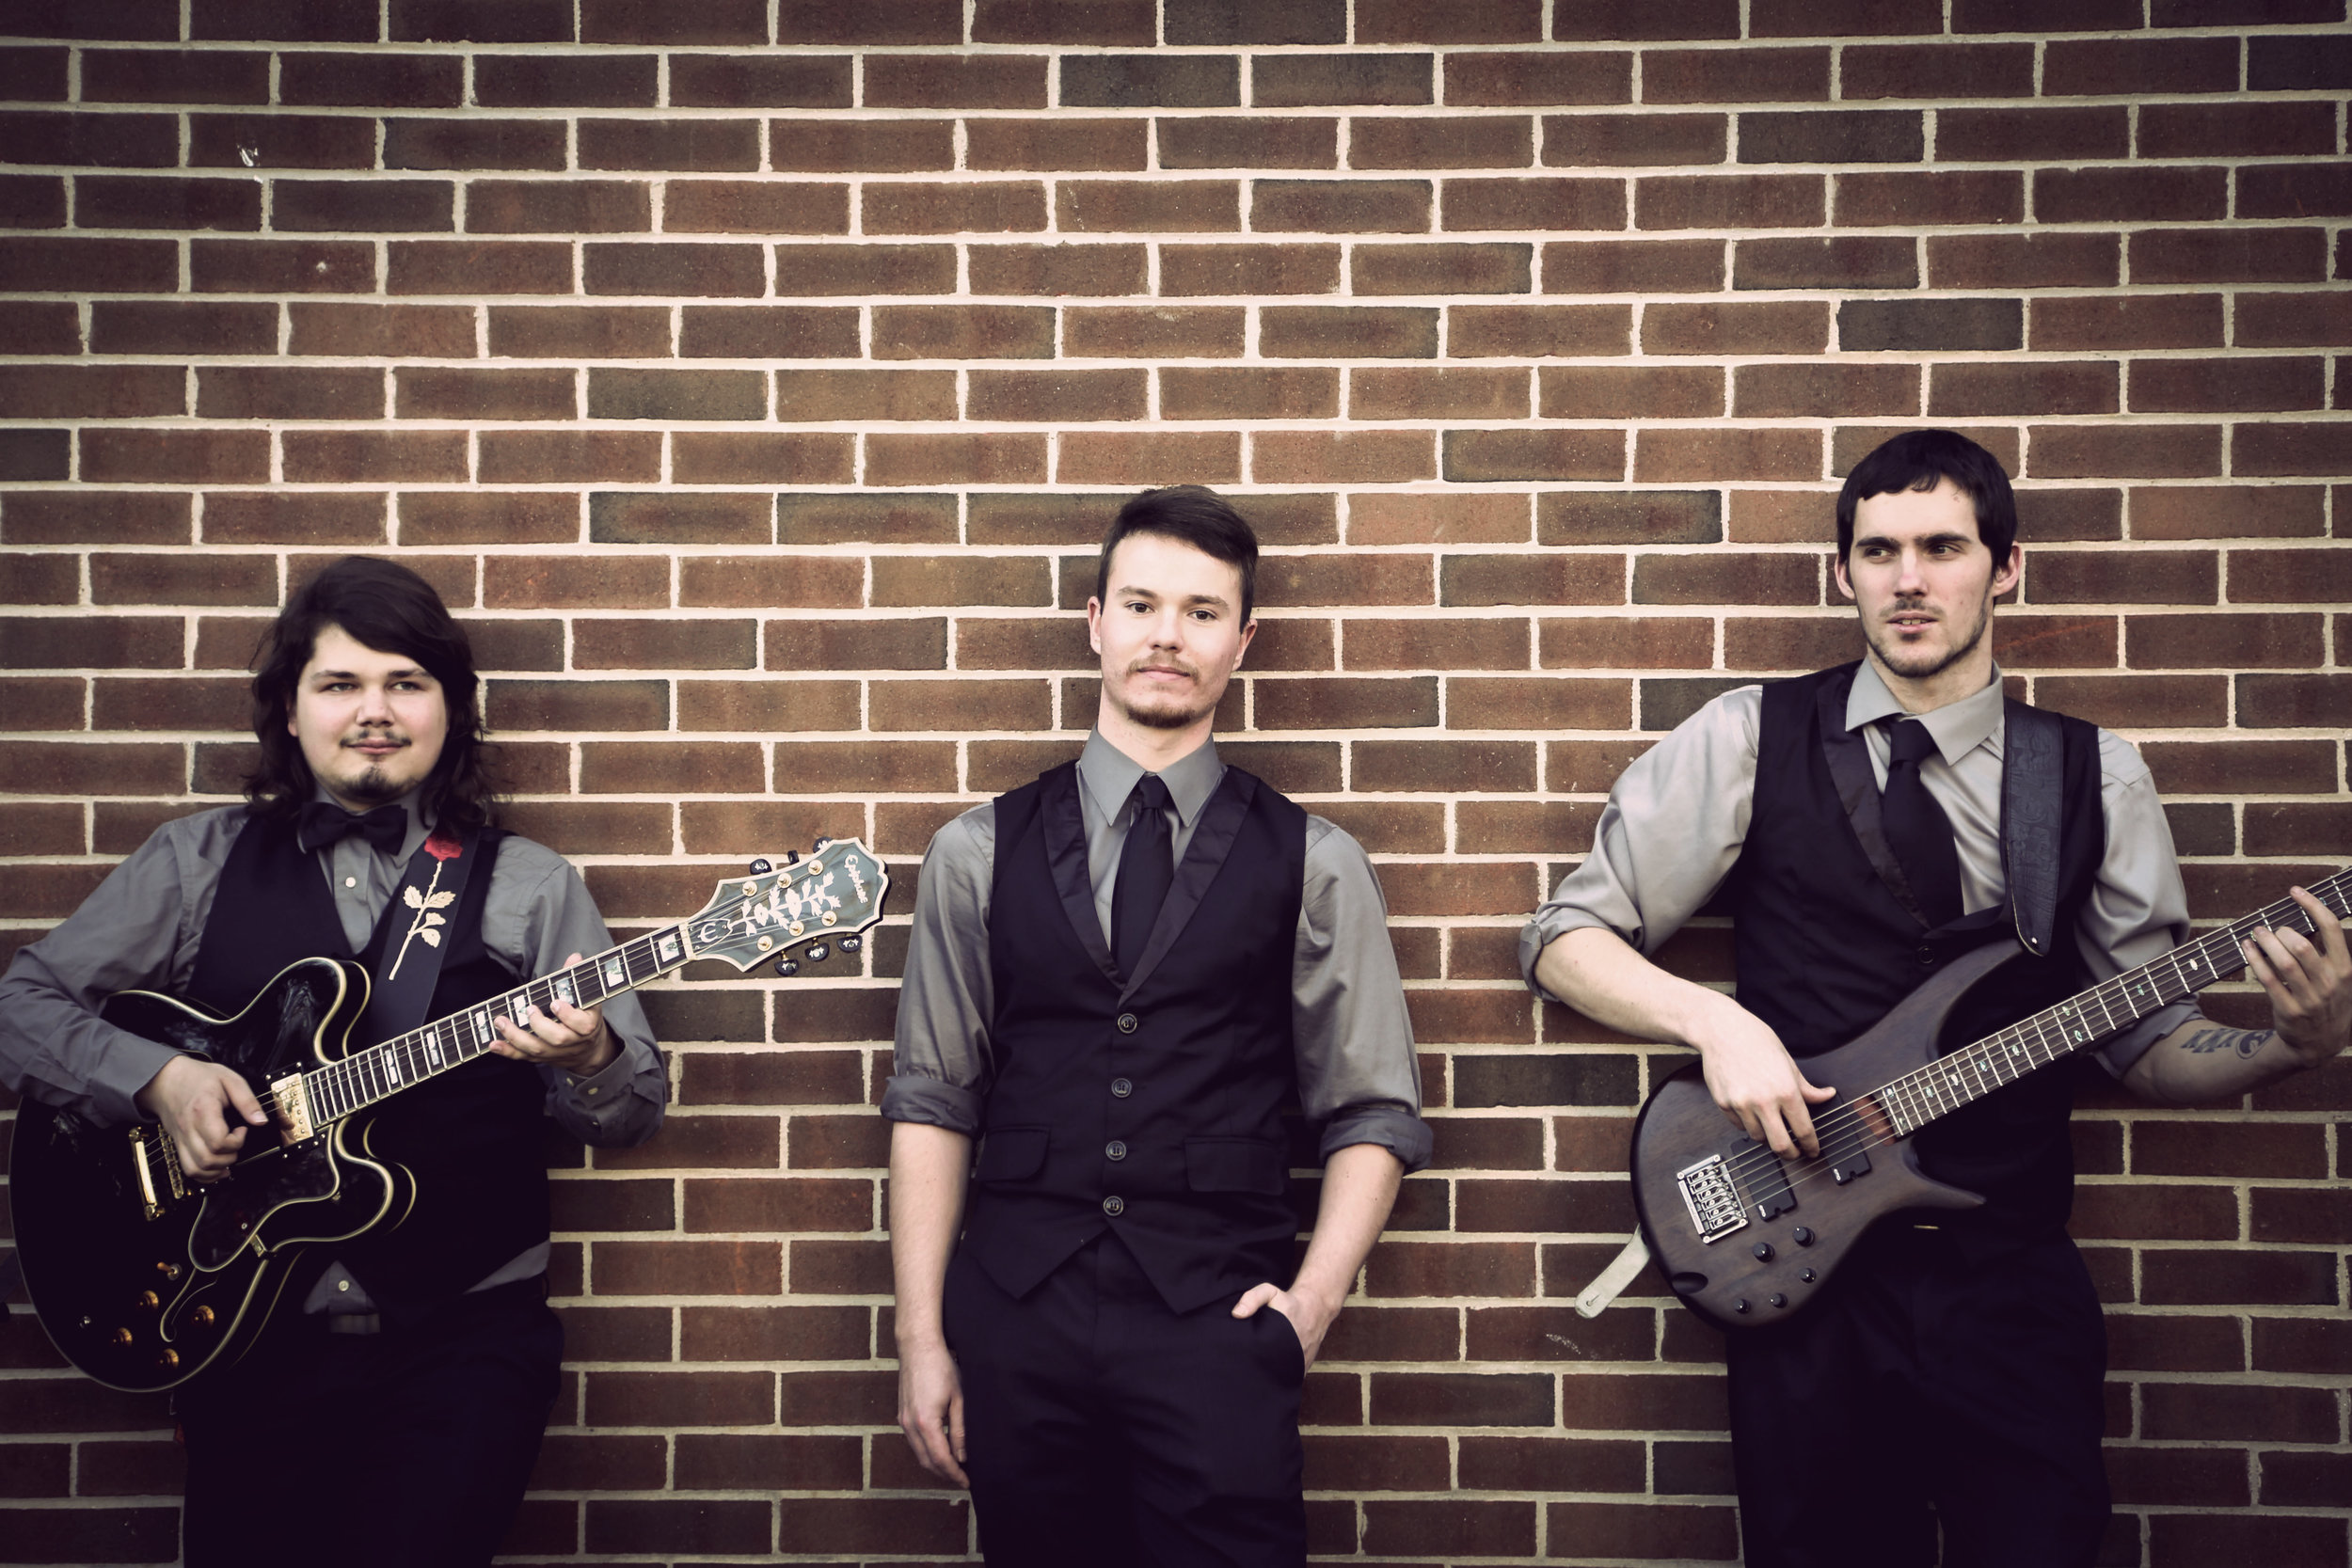 The Anthony Pieruccini Trio - The Anthony Pieruccini Trio is a instrumental group that plays primarily Jazz. The group has played venues such as the Hershey Hotel, Irv's Pub, and various other similar venues. The band also plays private parties, weddings and other events!Read More